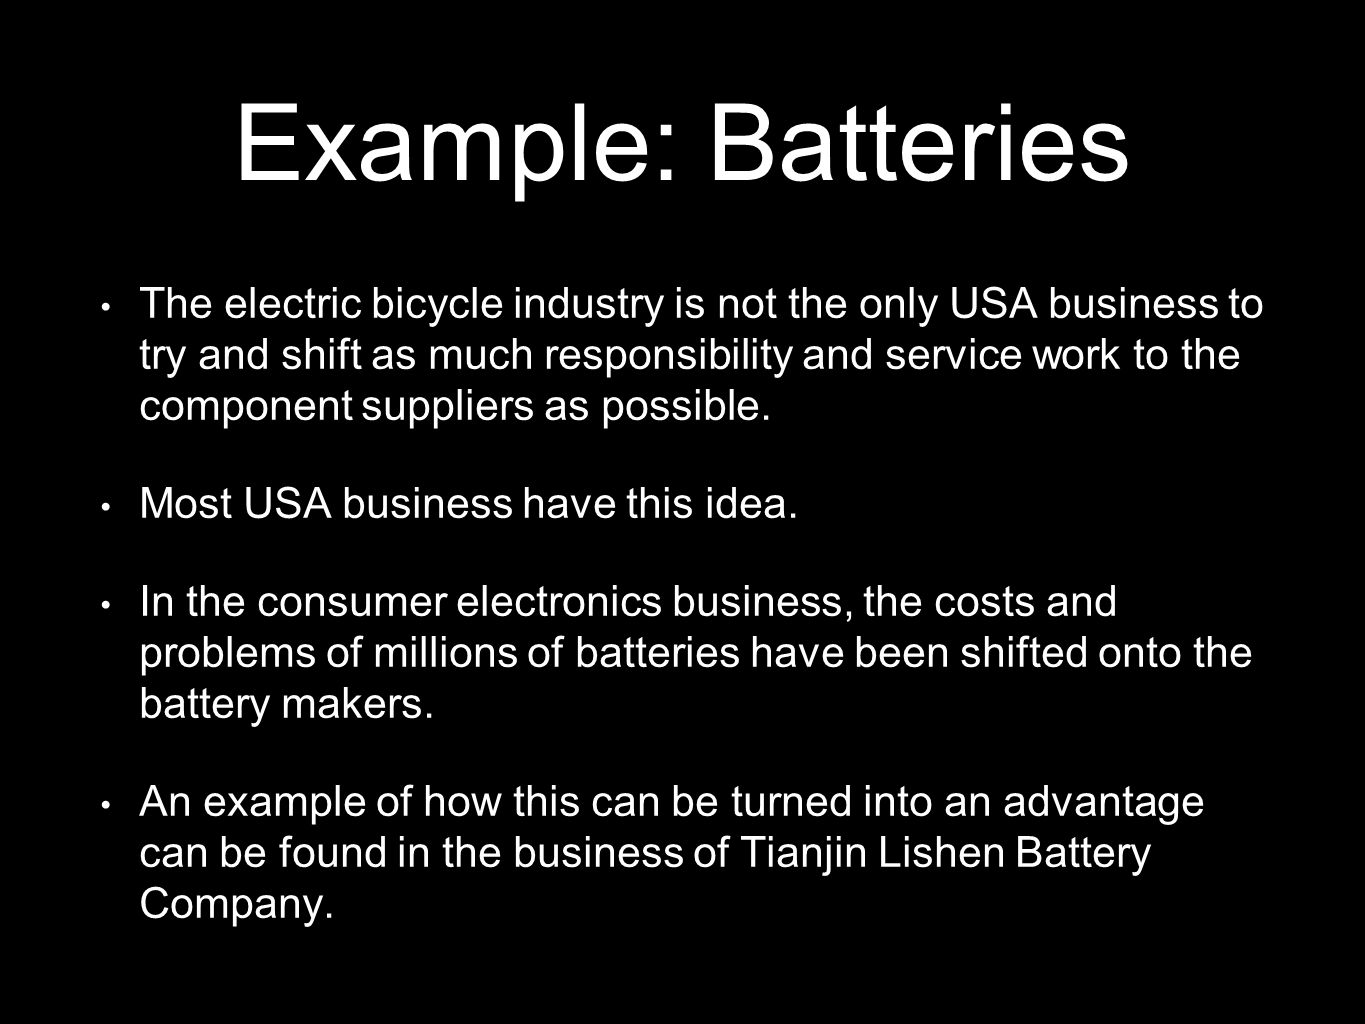 Example: Batteries The electric bicycle industry is not the only USA business to try and shift as much responsibility and service work to the component suppliers as possible.